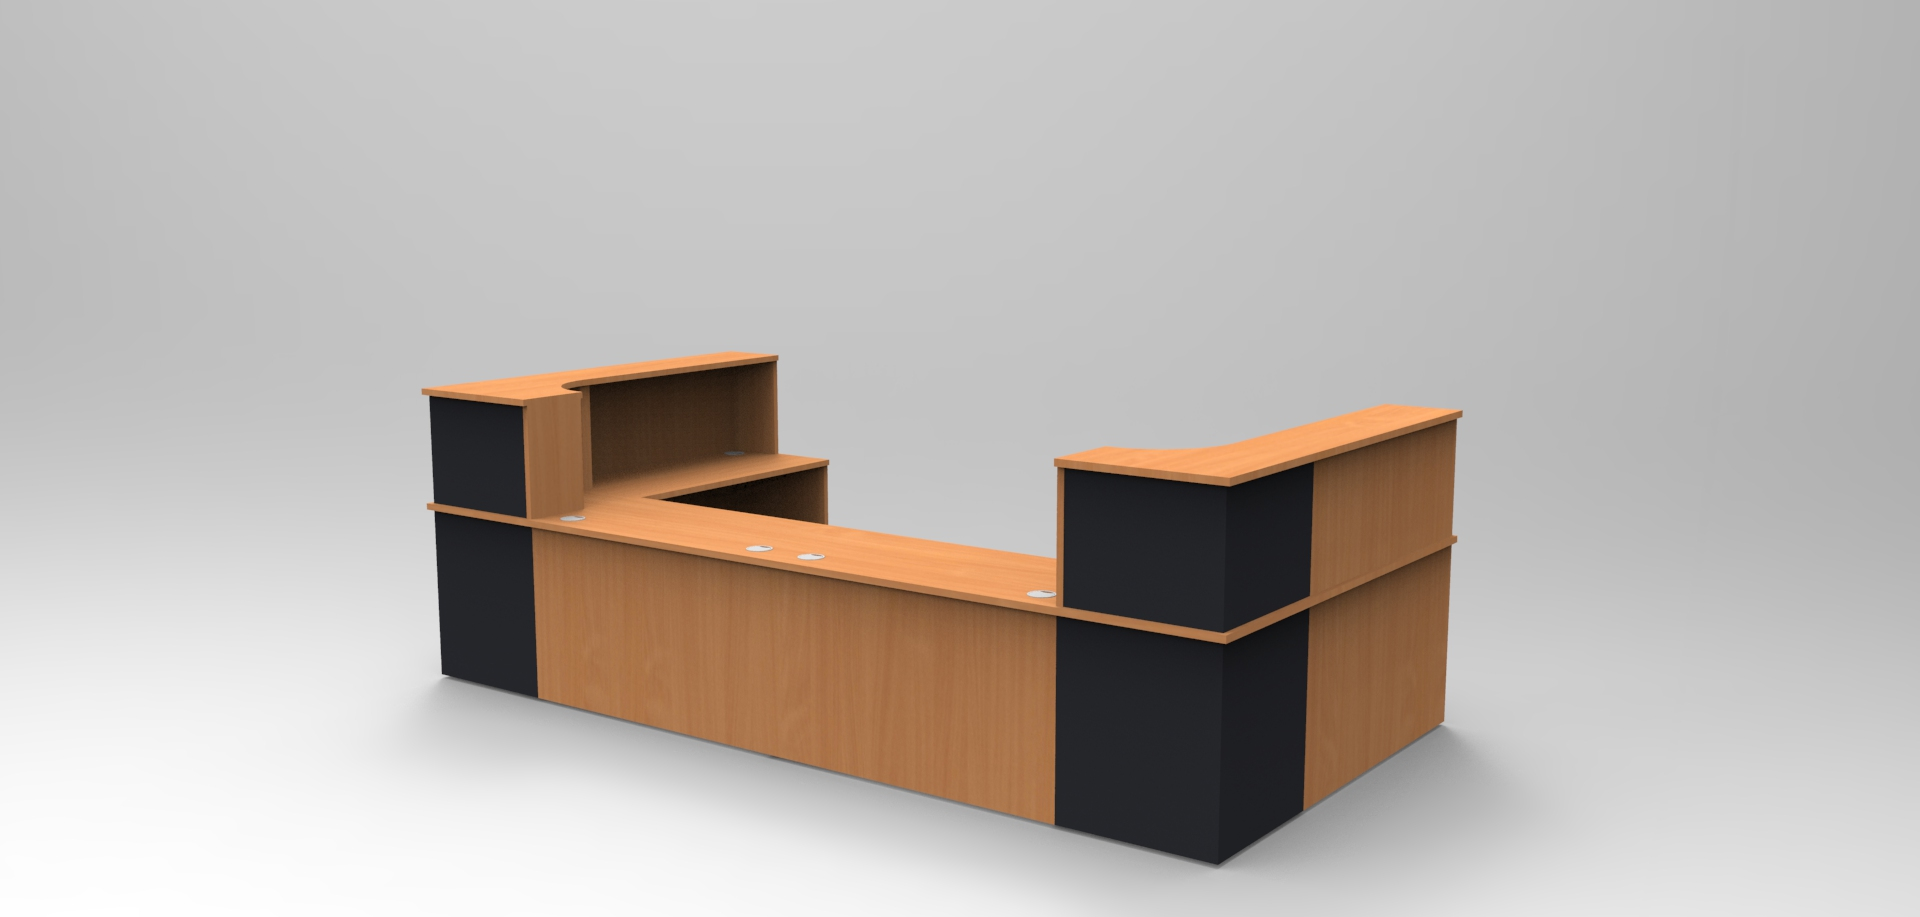 Image 34C - Classic reception desk -Beech & Graphite Grey with an open front